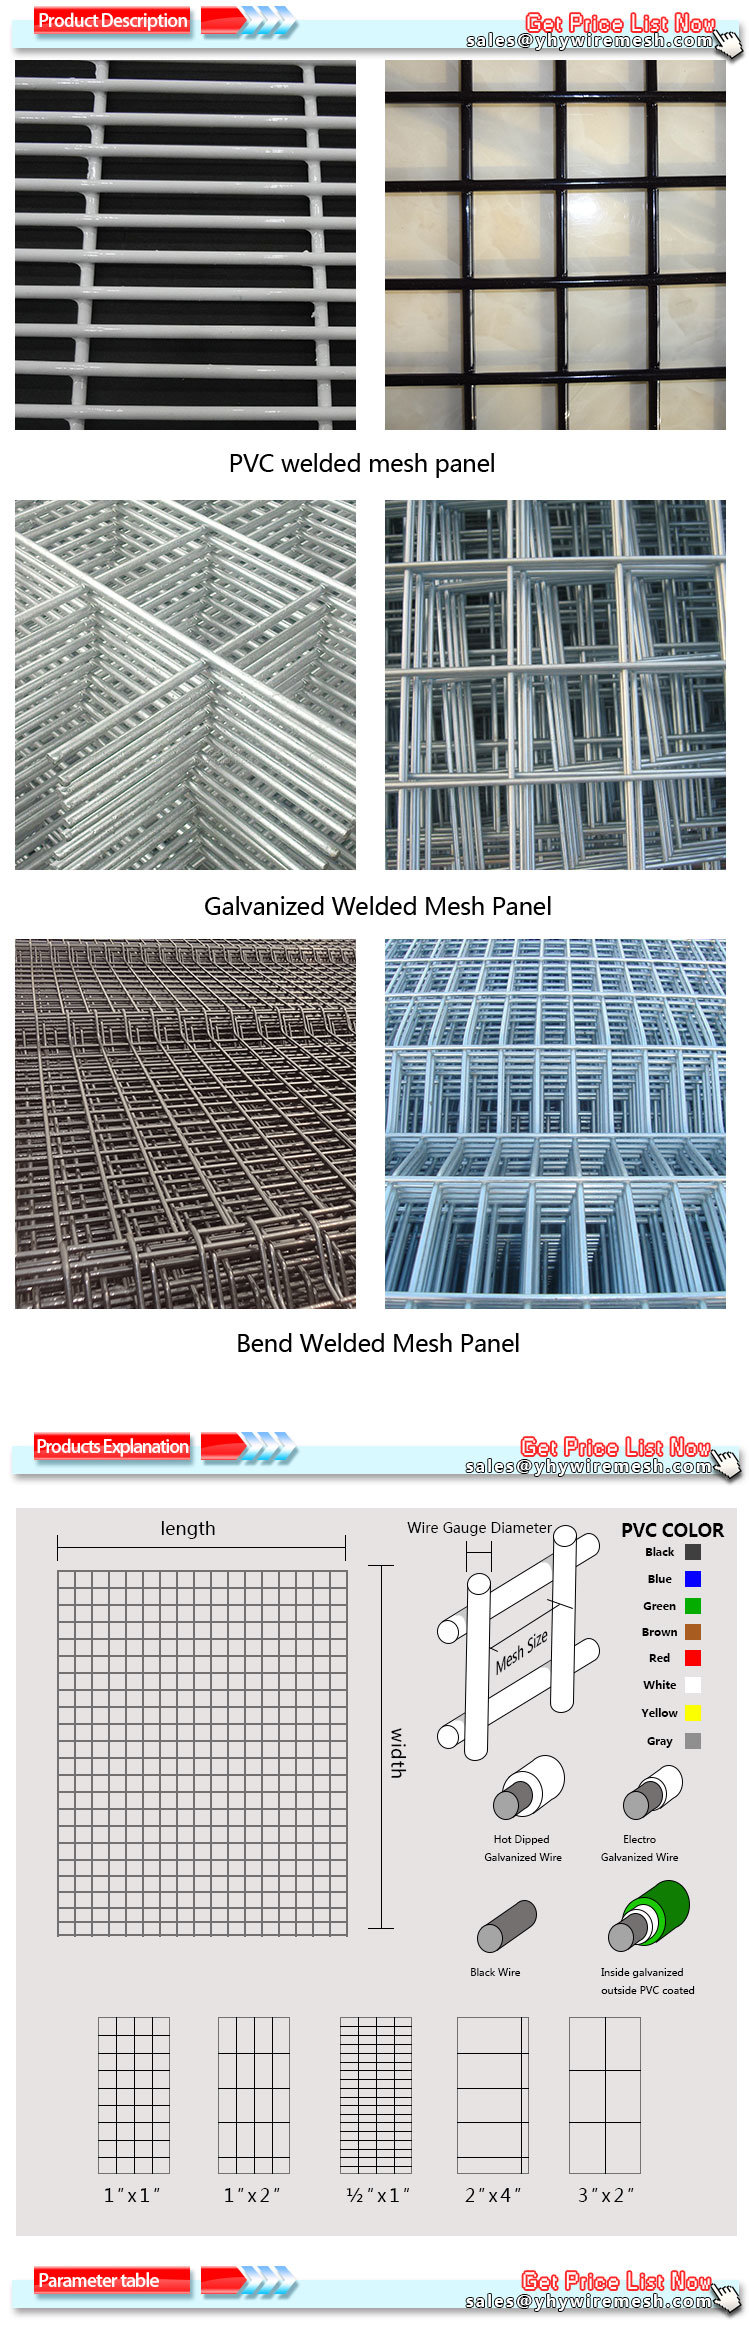 Black Welded Wire Fence Black PVC Coated Welded Wire Fence W - Systym.co